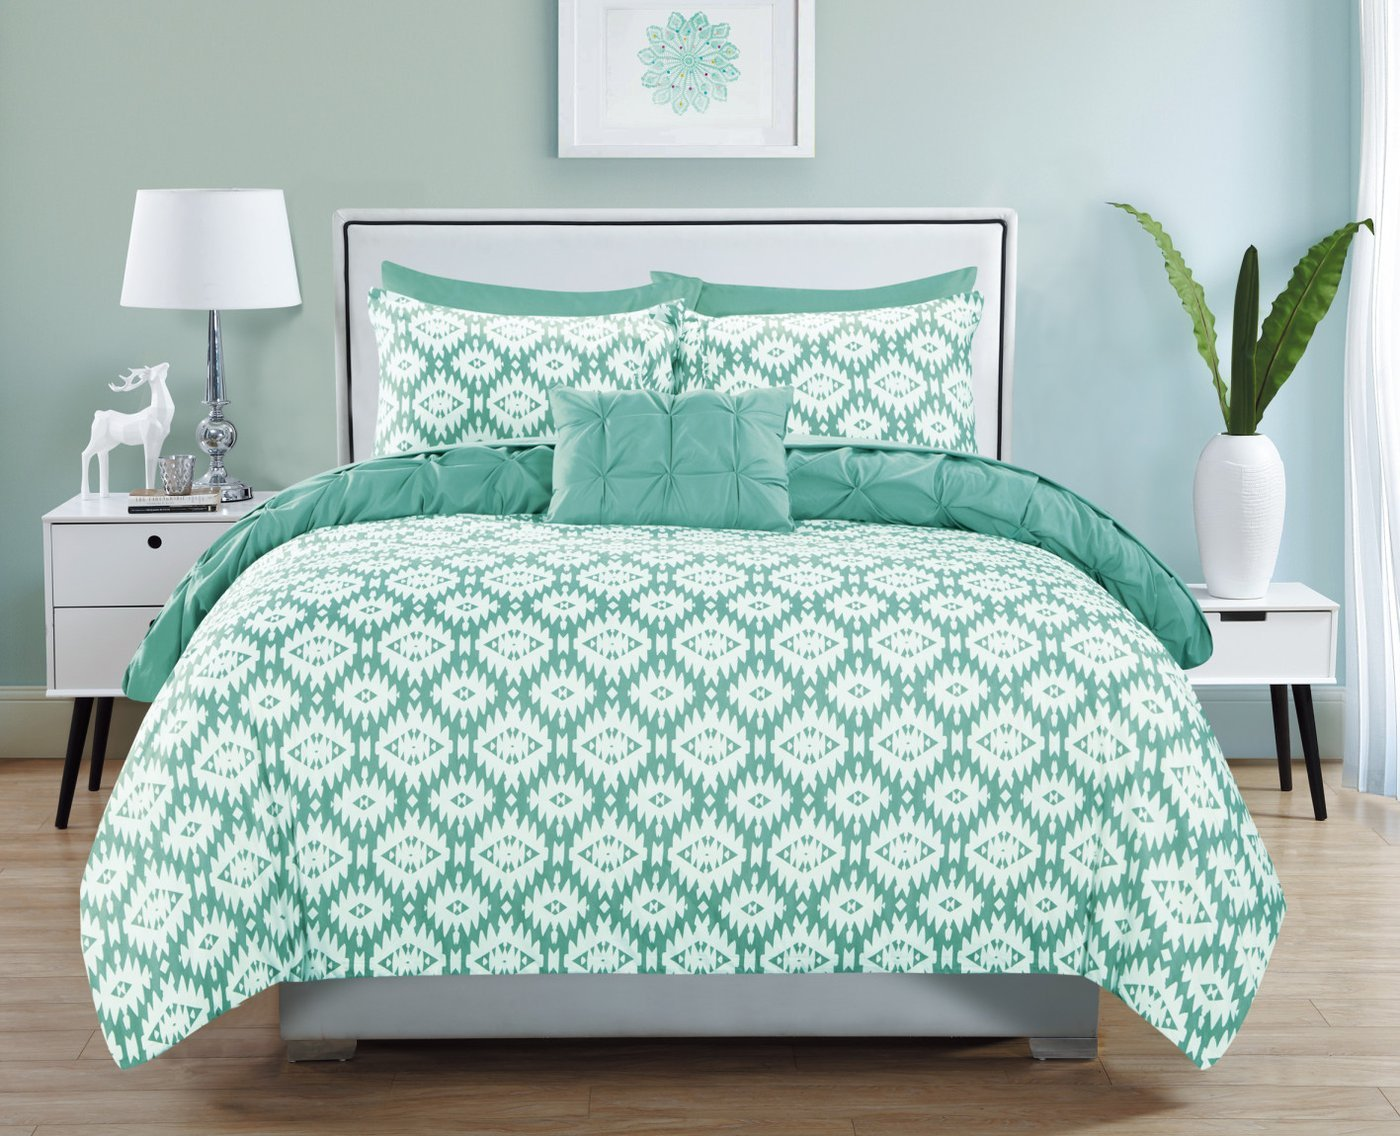 Chic Home 4 Piece Zissel Pleated Pintuck and Printed Reversible with Elephant Embroidered Pillow King Duvet Cover Set Aqua